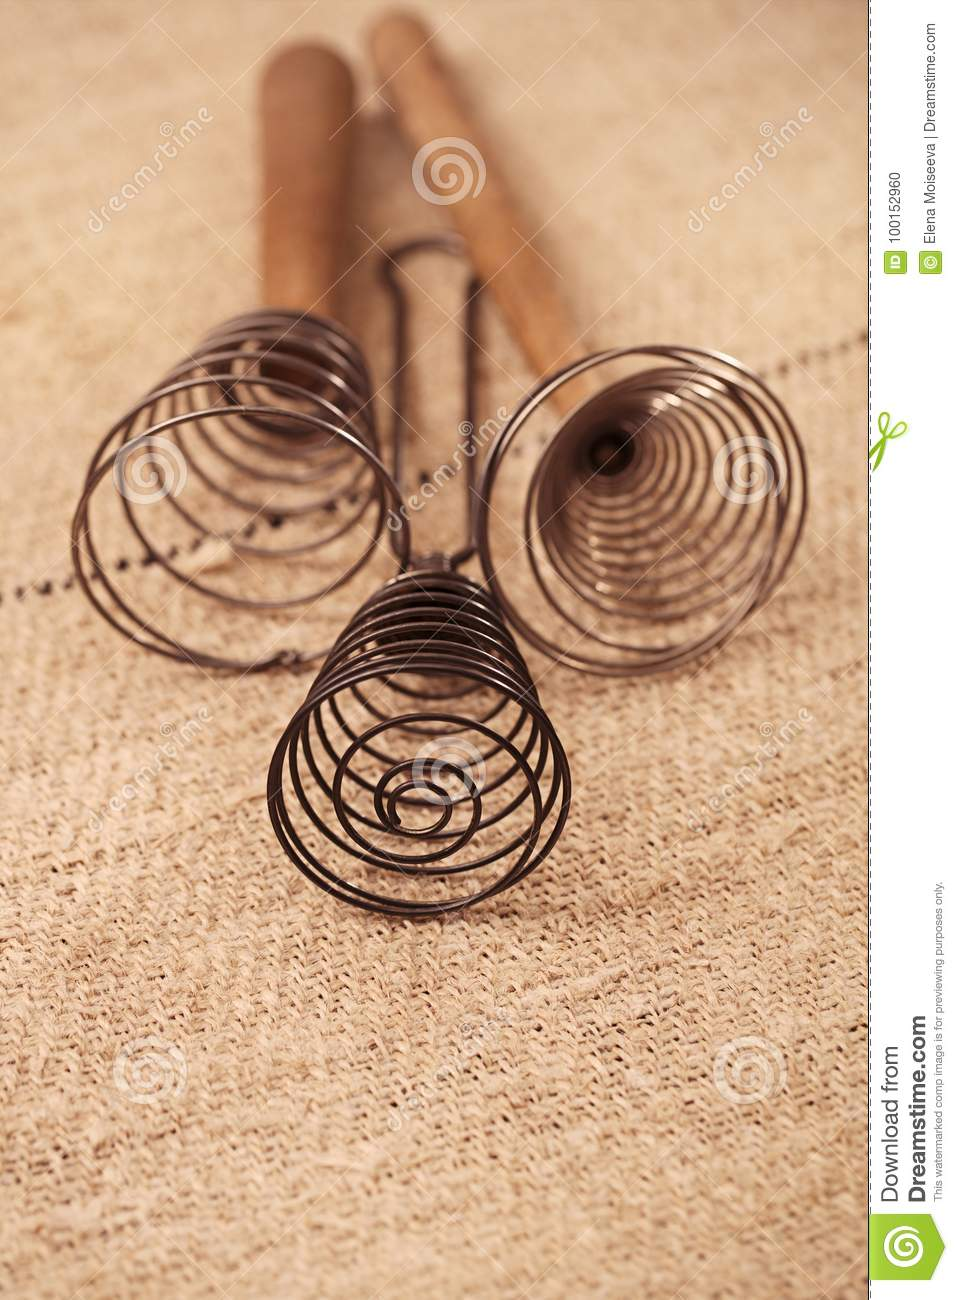 Real Vintage Wooden Wire Whisk Stock Photo - Image of hemp, antique ...